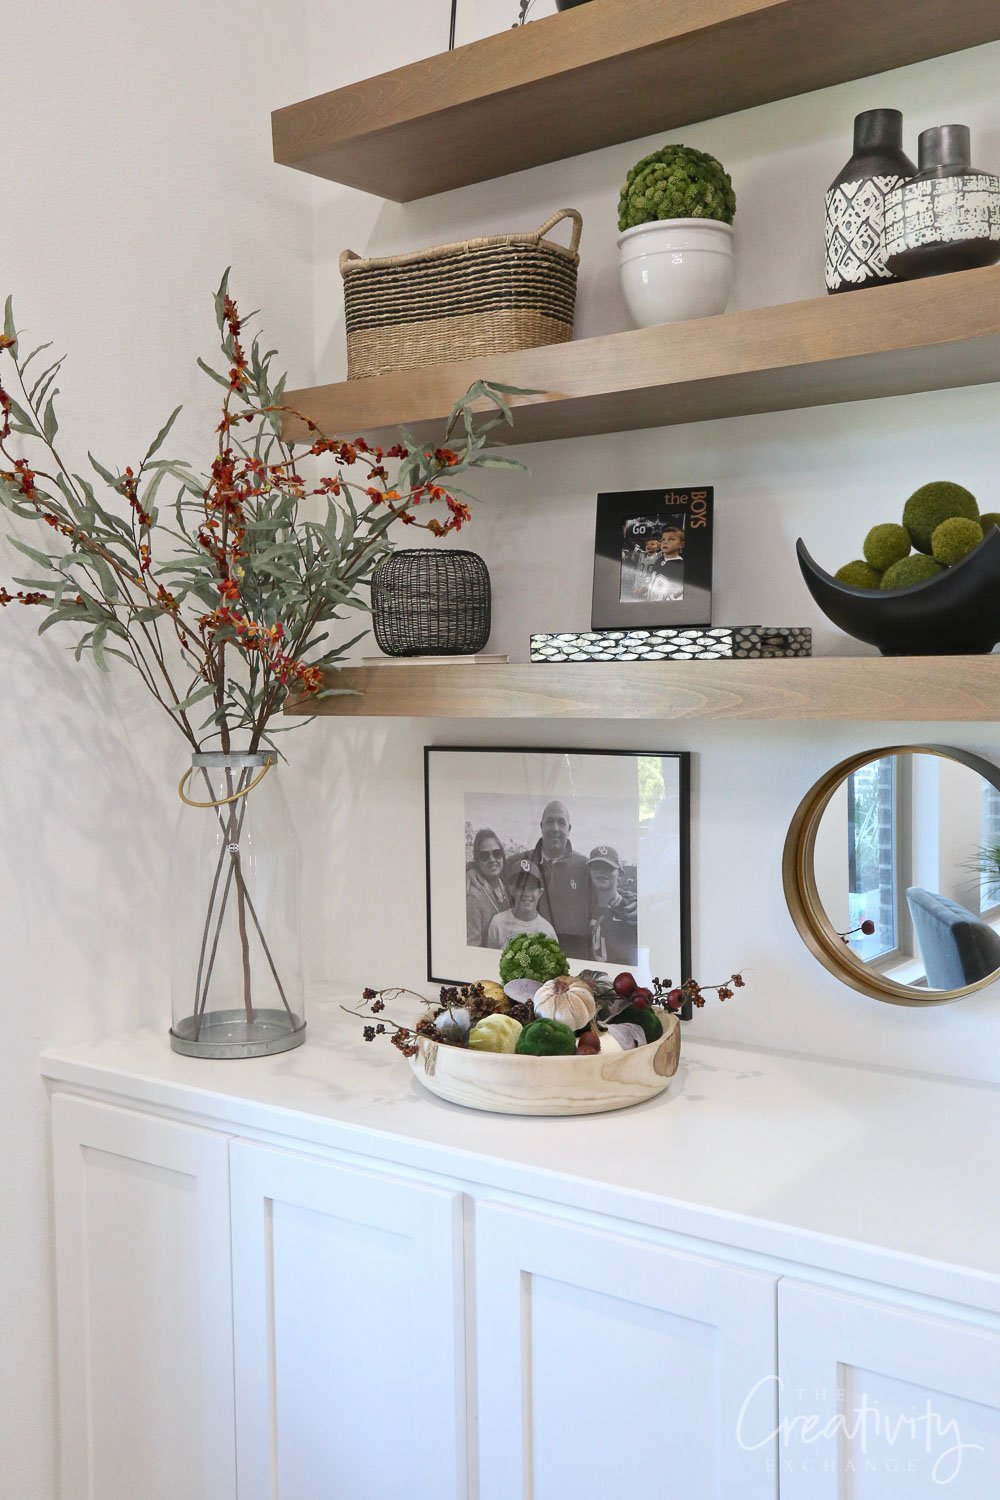 5 minute fall styling tips and tricks